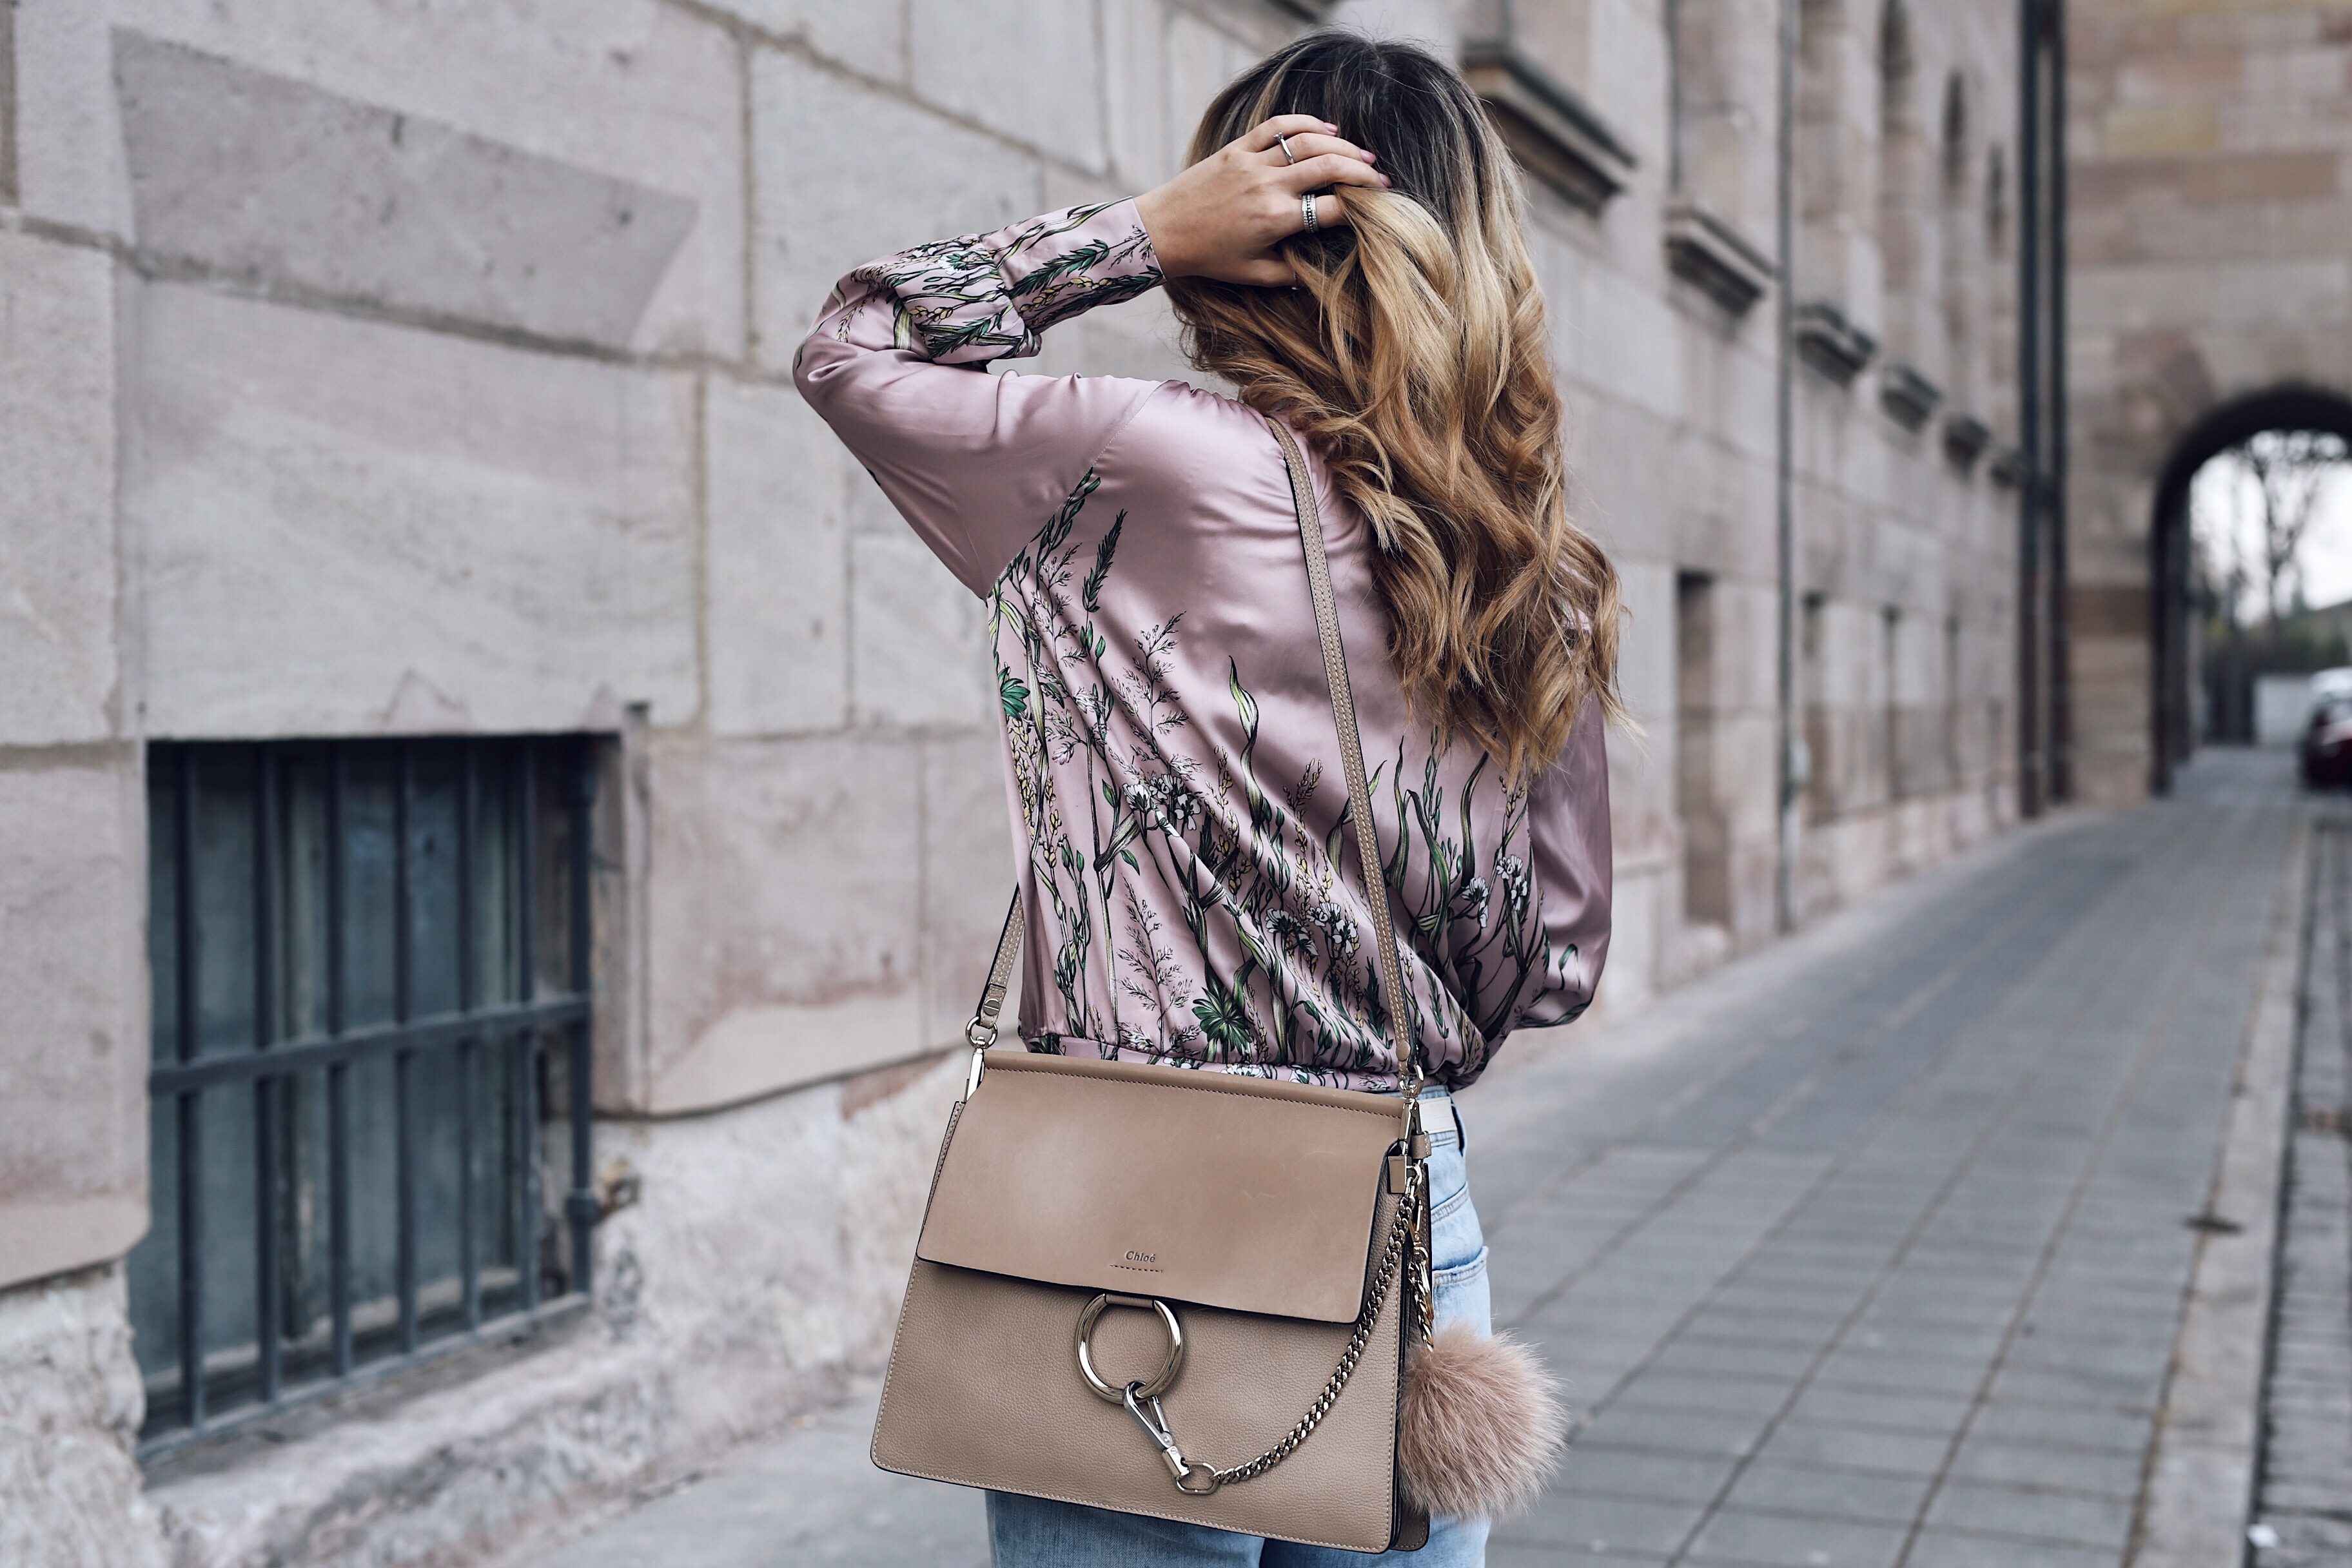 Want Get Repeat Blog How to Style Zara Floral Print Body in Winter Outfit